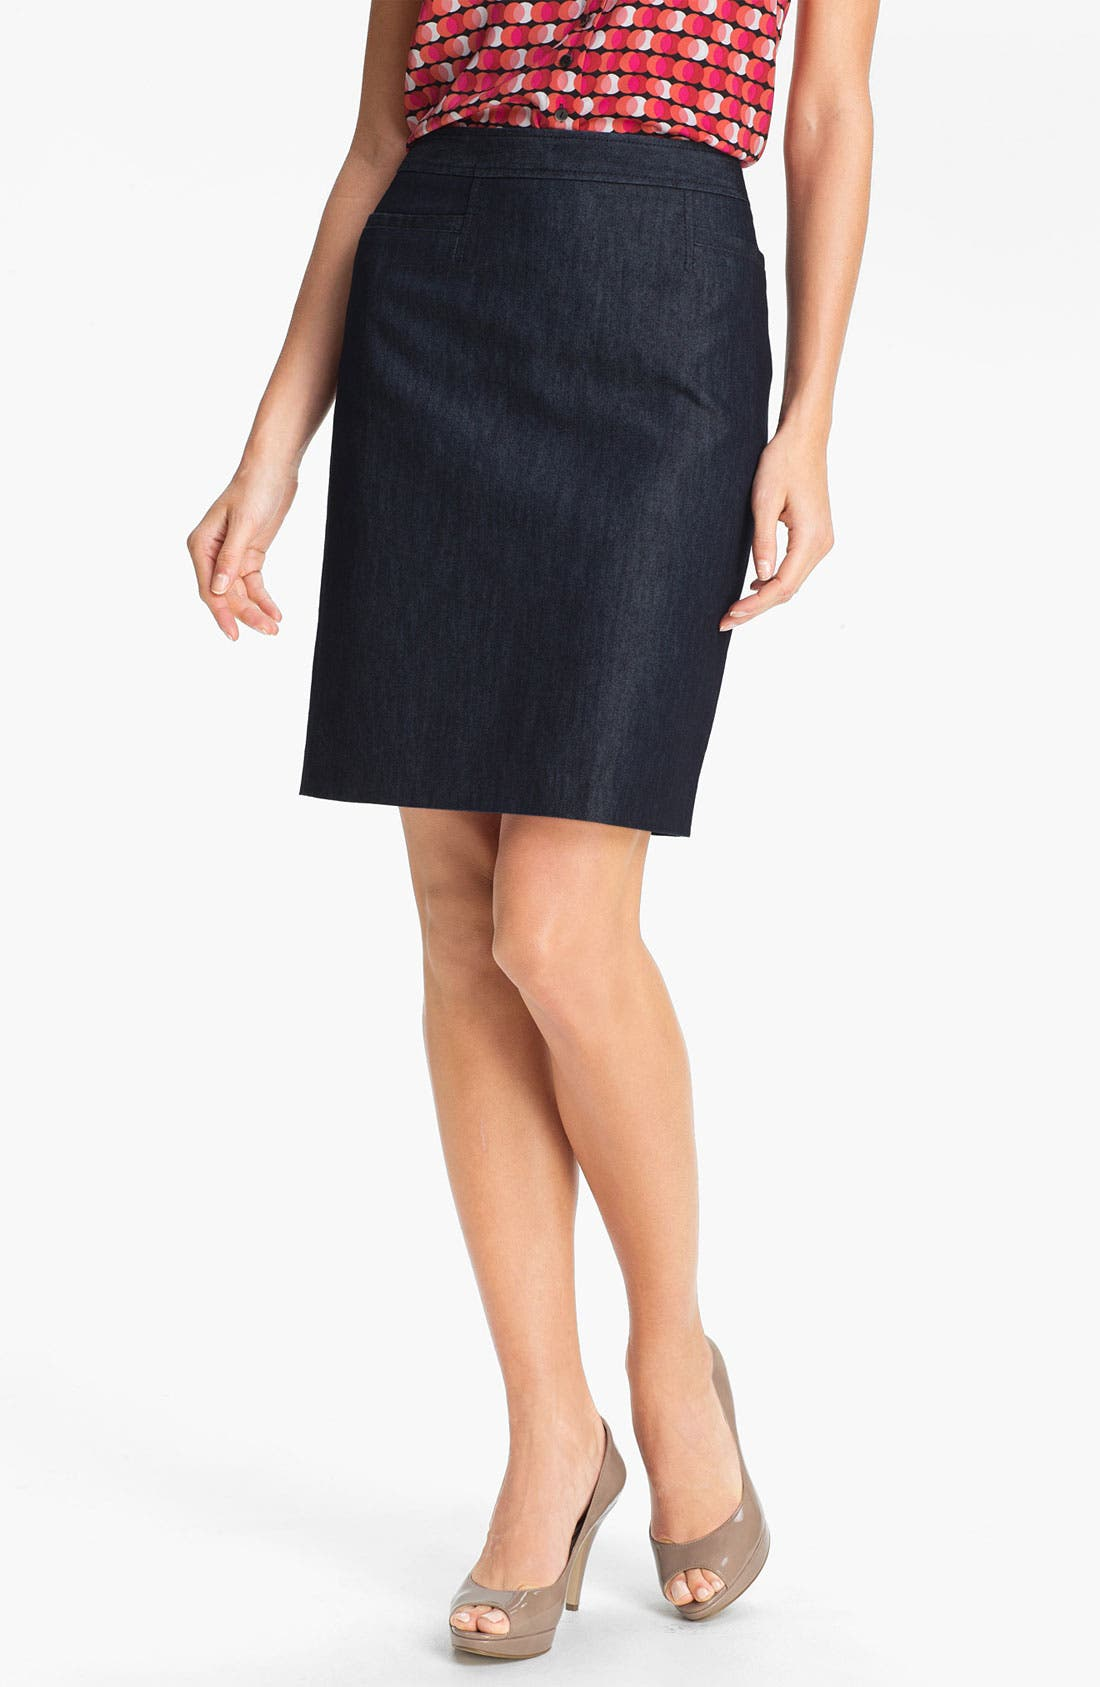 Alternate Image 1 Selected - Halogen® Stretch Woven Skirt (Regular & Petite)